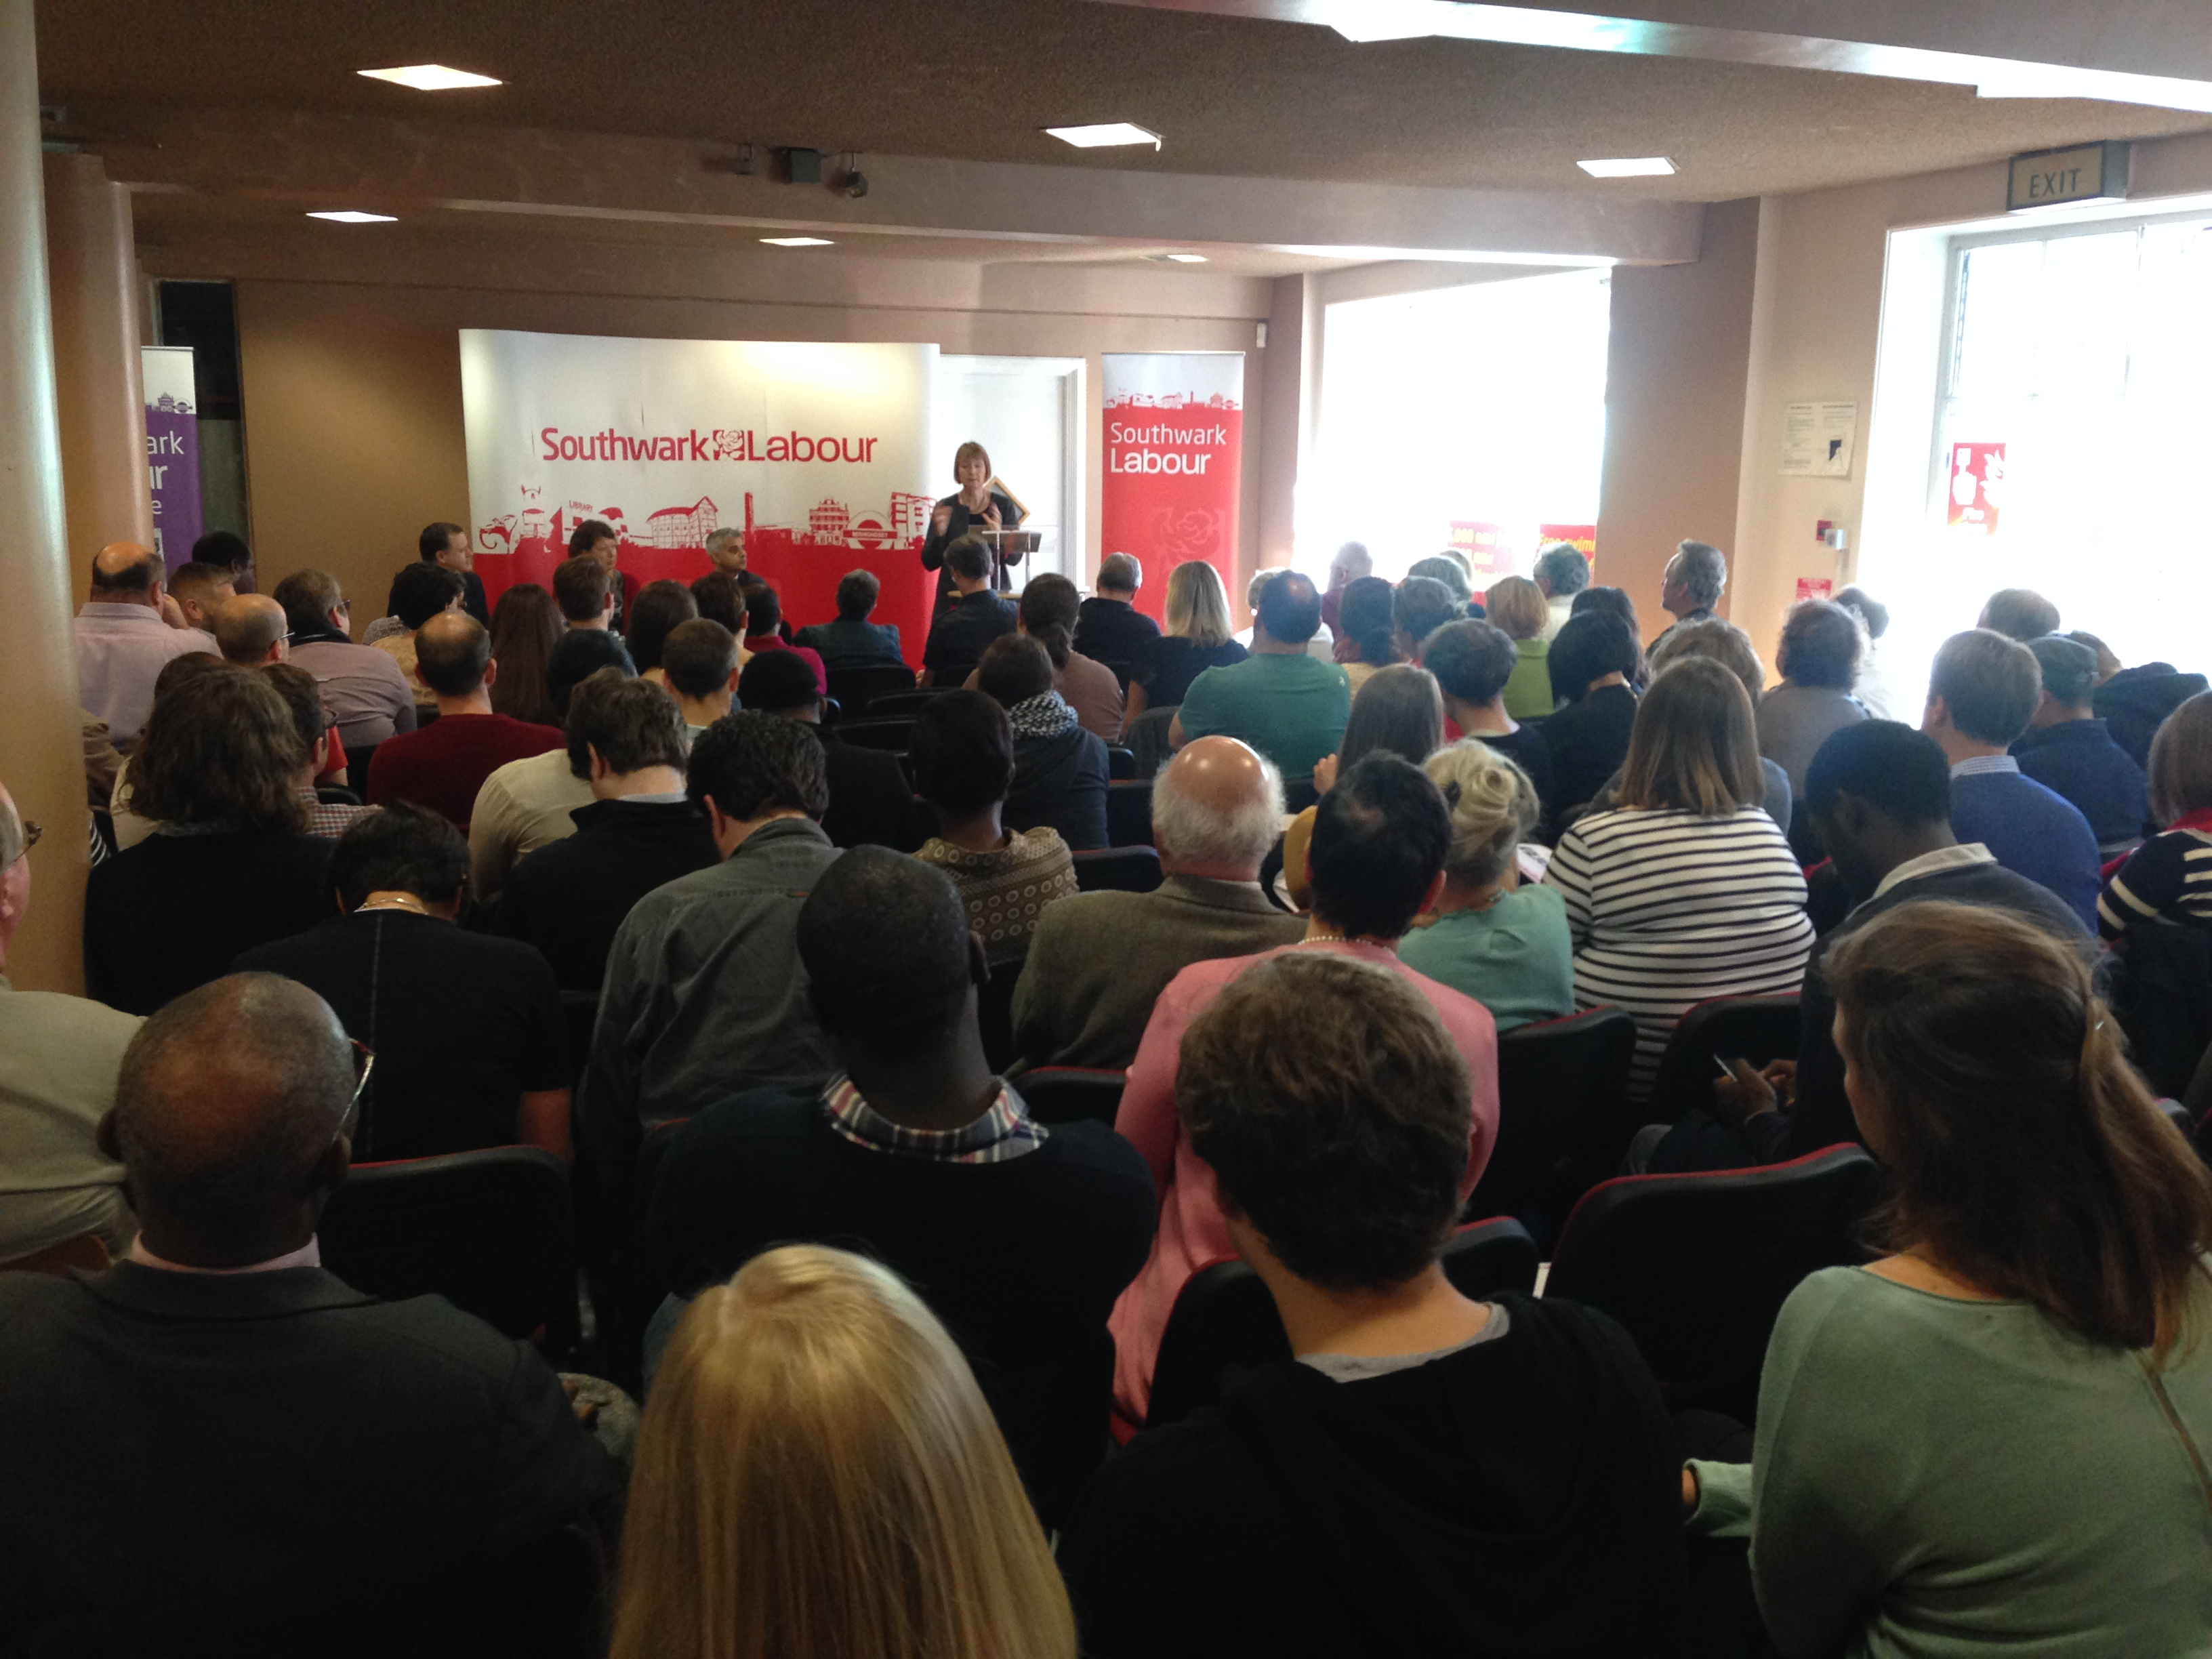 Crowd_Southwark_Conf_2015.jpg